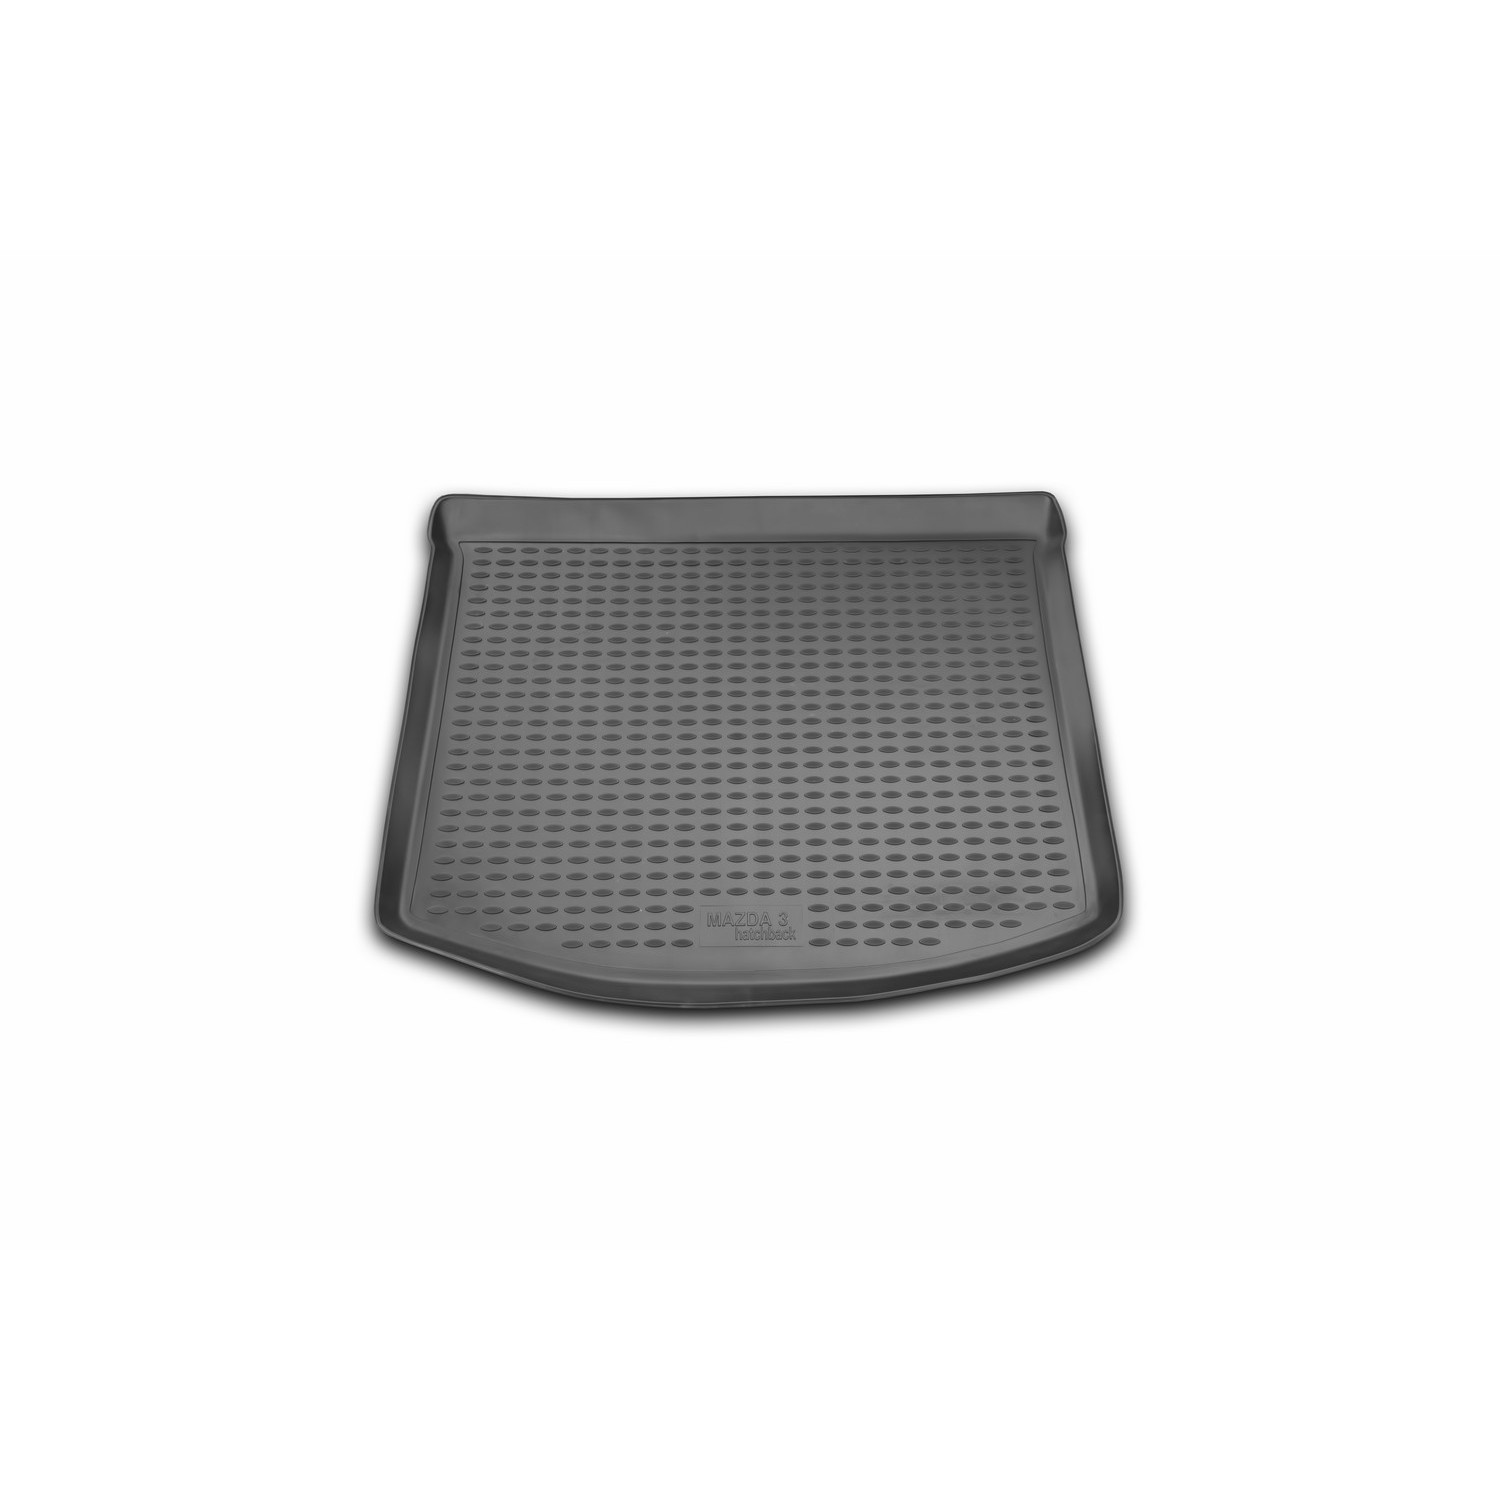 Trunk Mat For MAZDA 3 2003-2009, HB. CARMZD00006